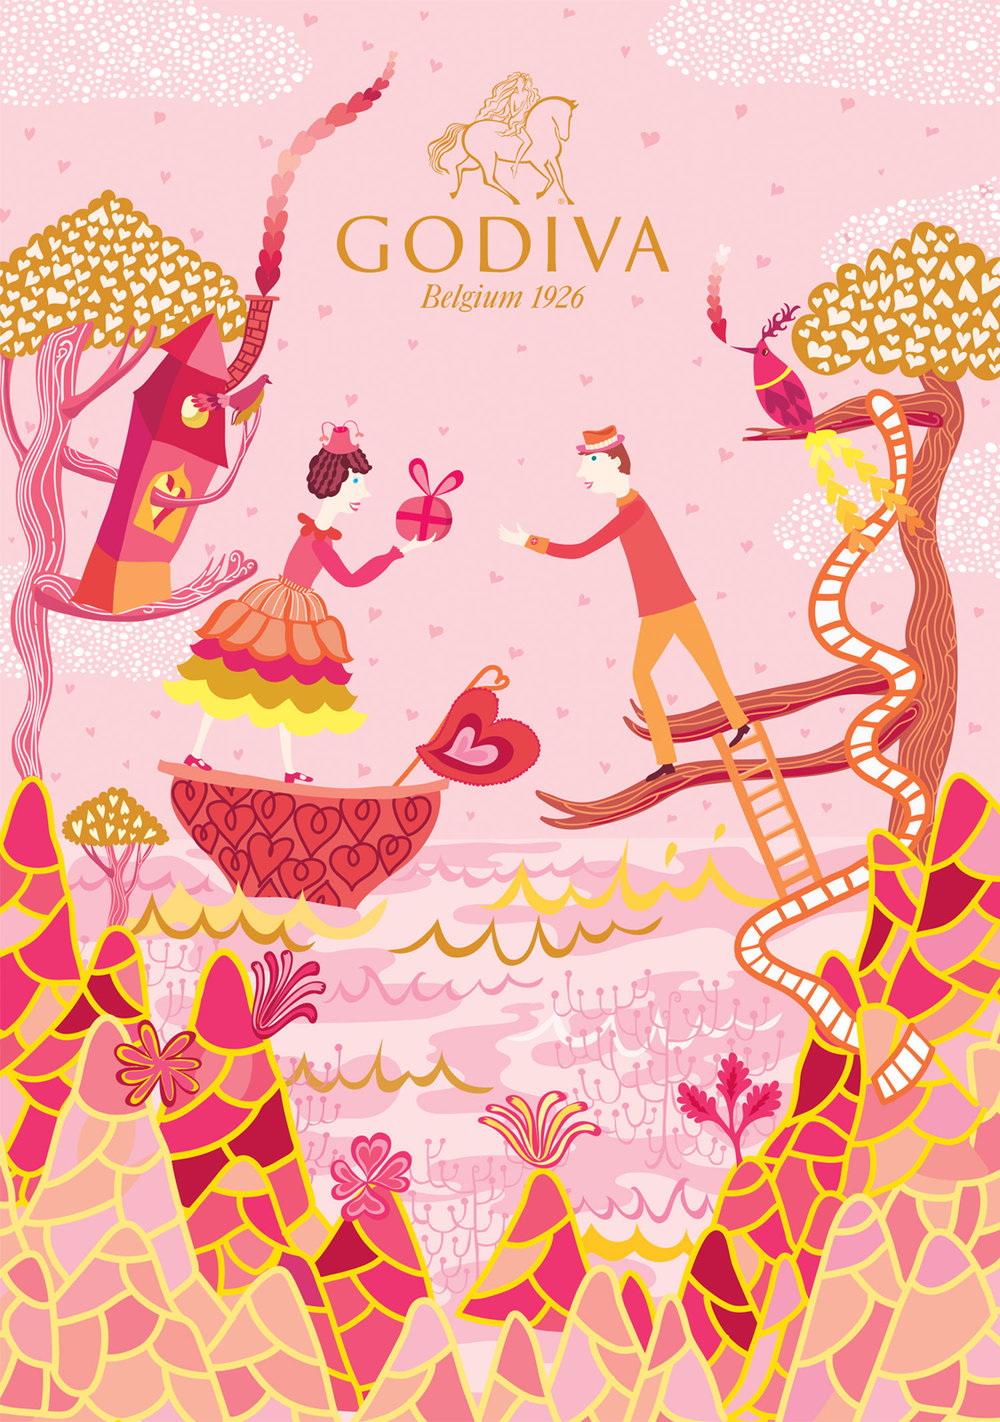 Godiva Valentine's Day & White Day Packaging